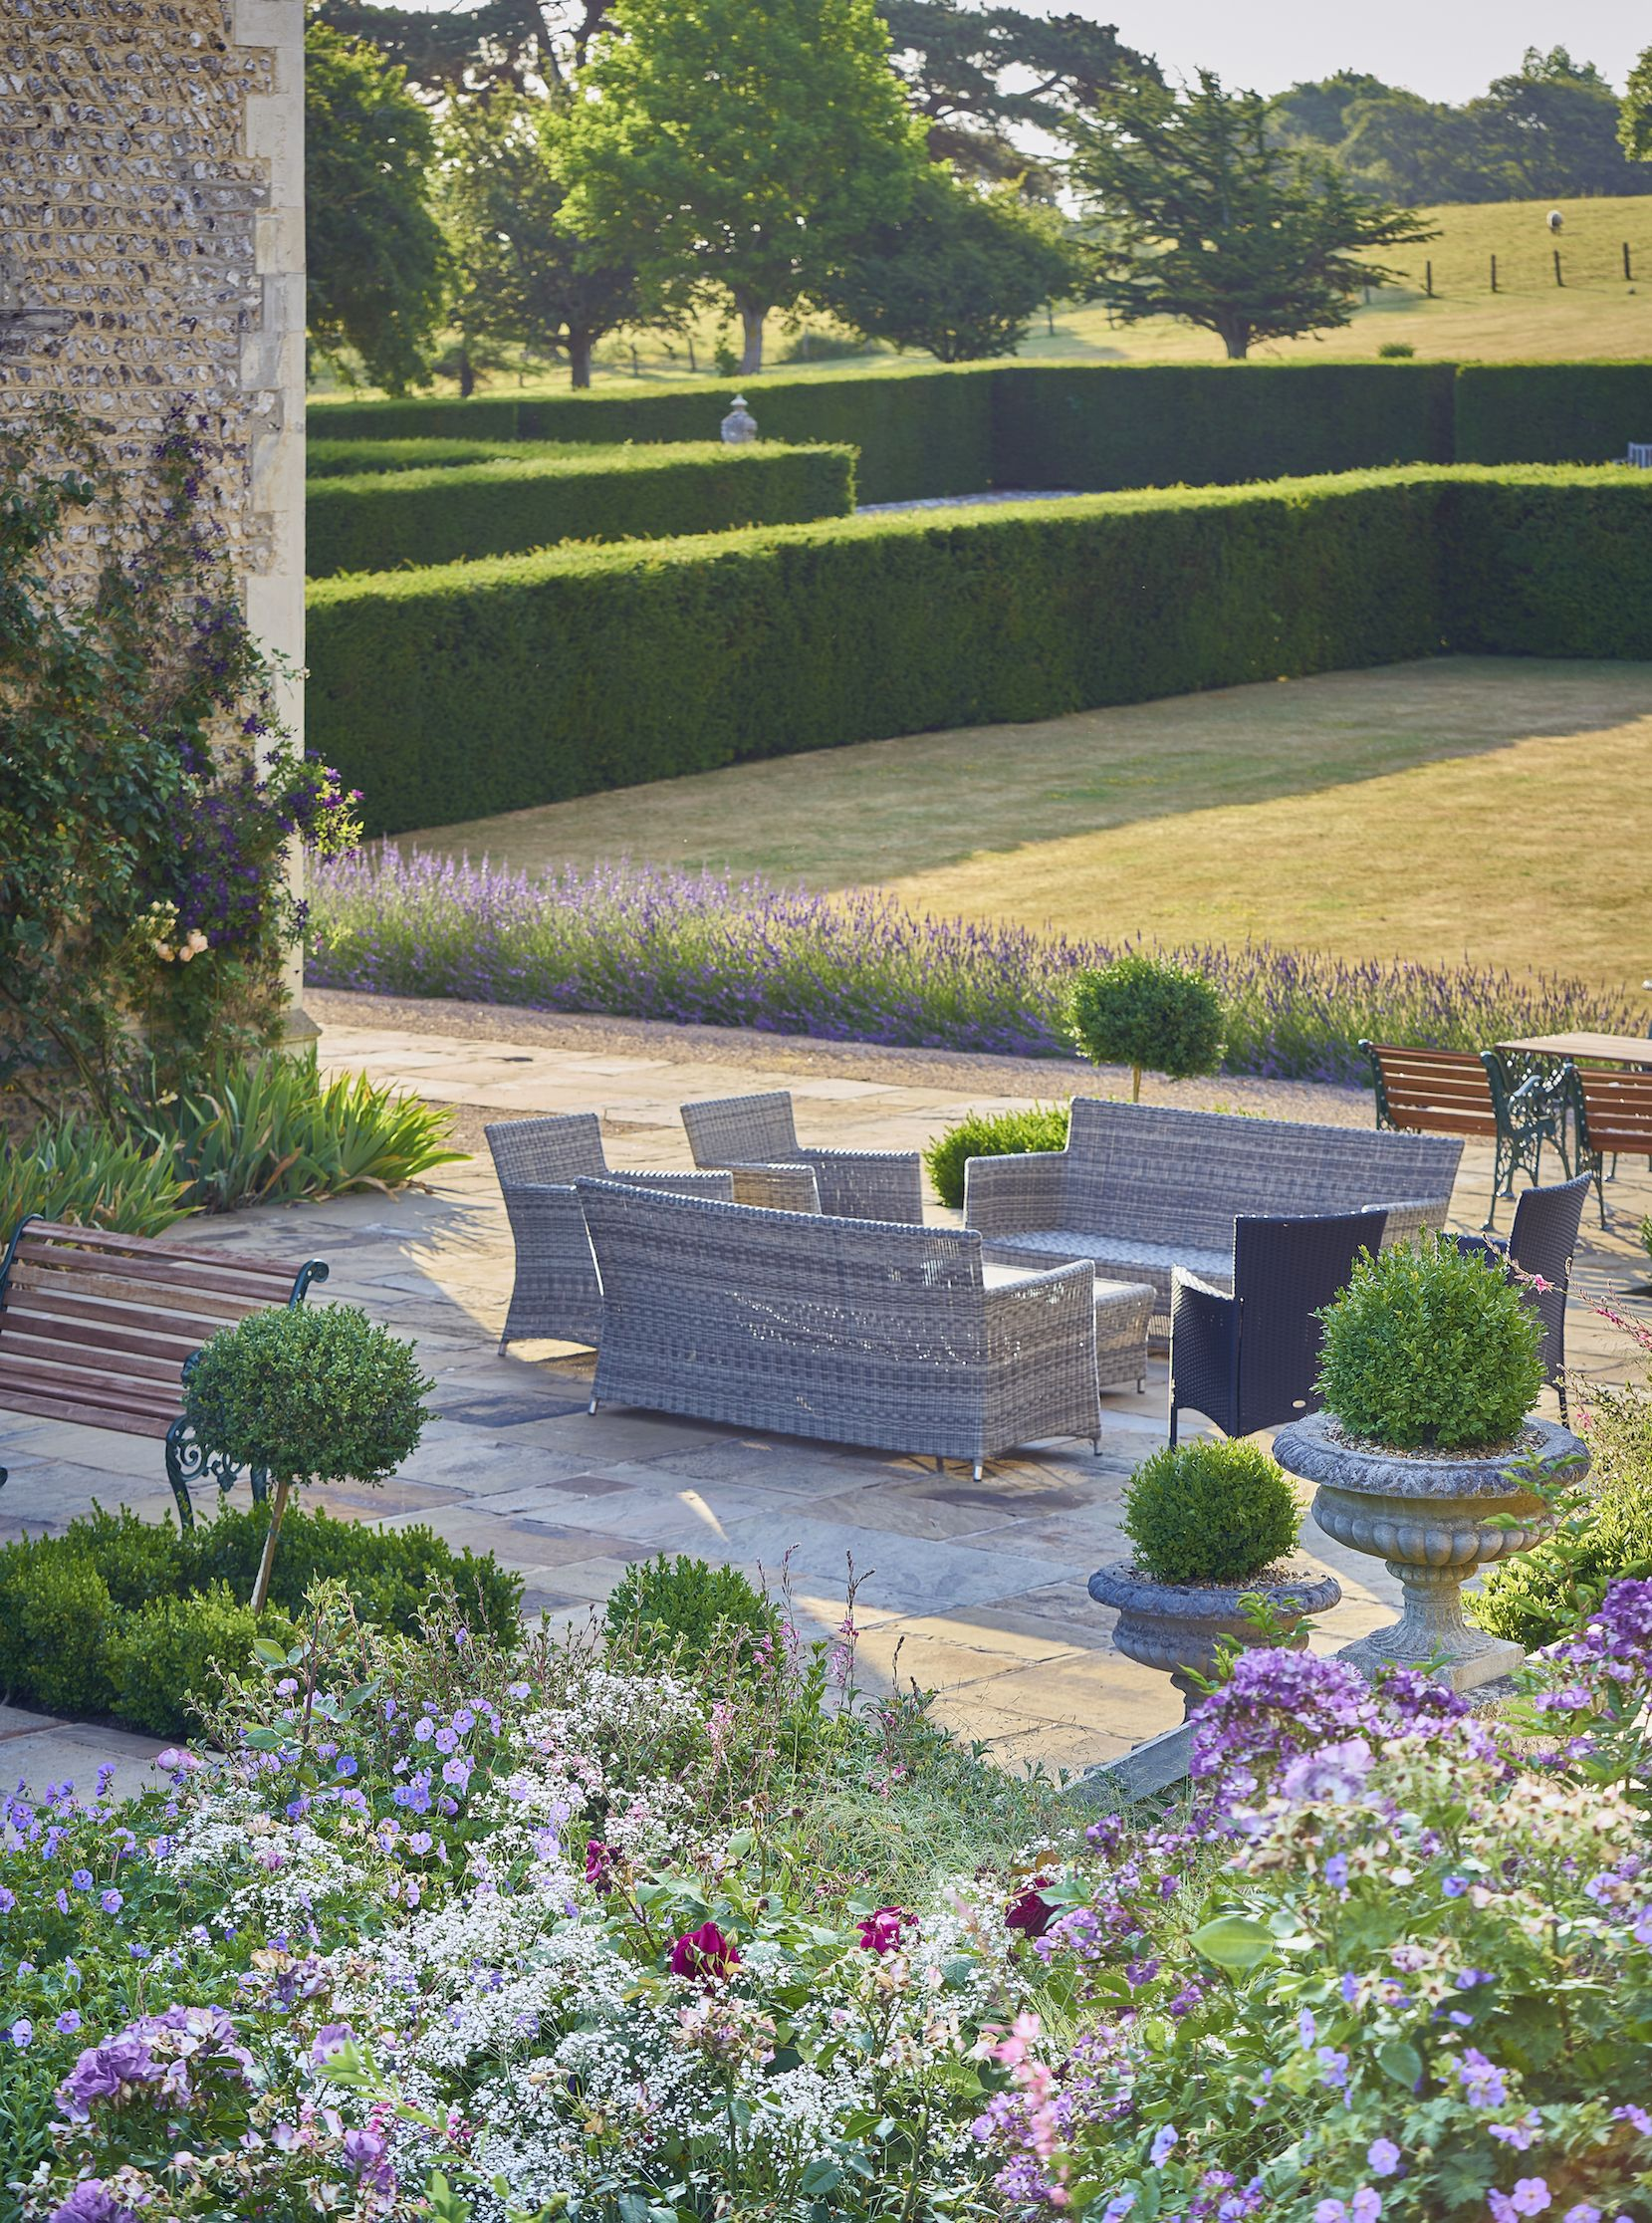 5 garden ideas to try this summer, according to Juliet Sargeant